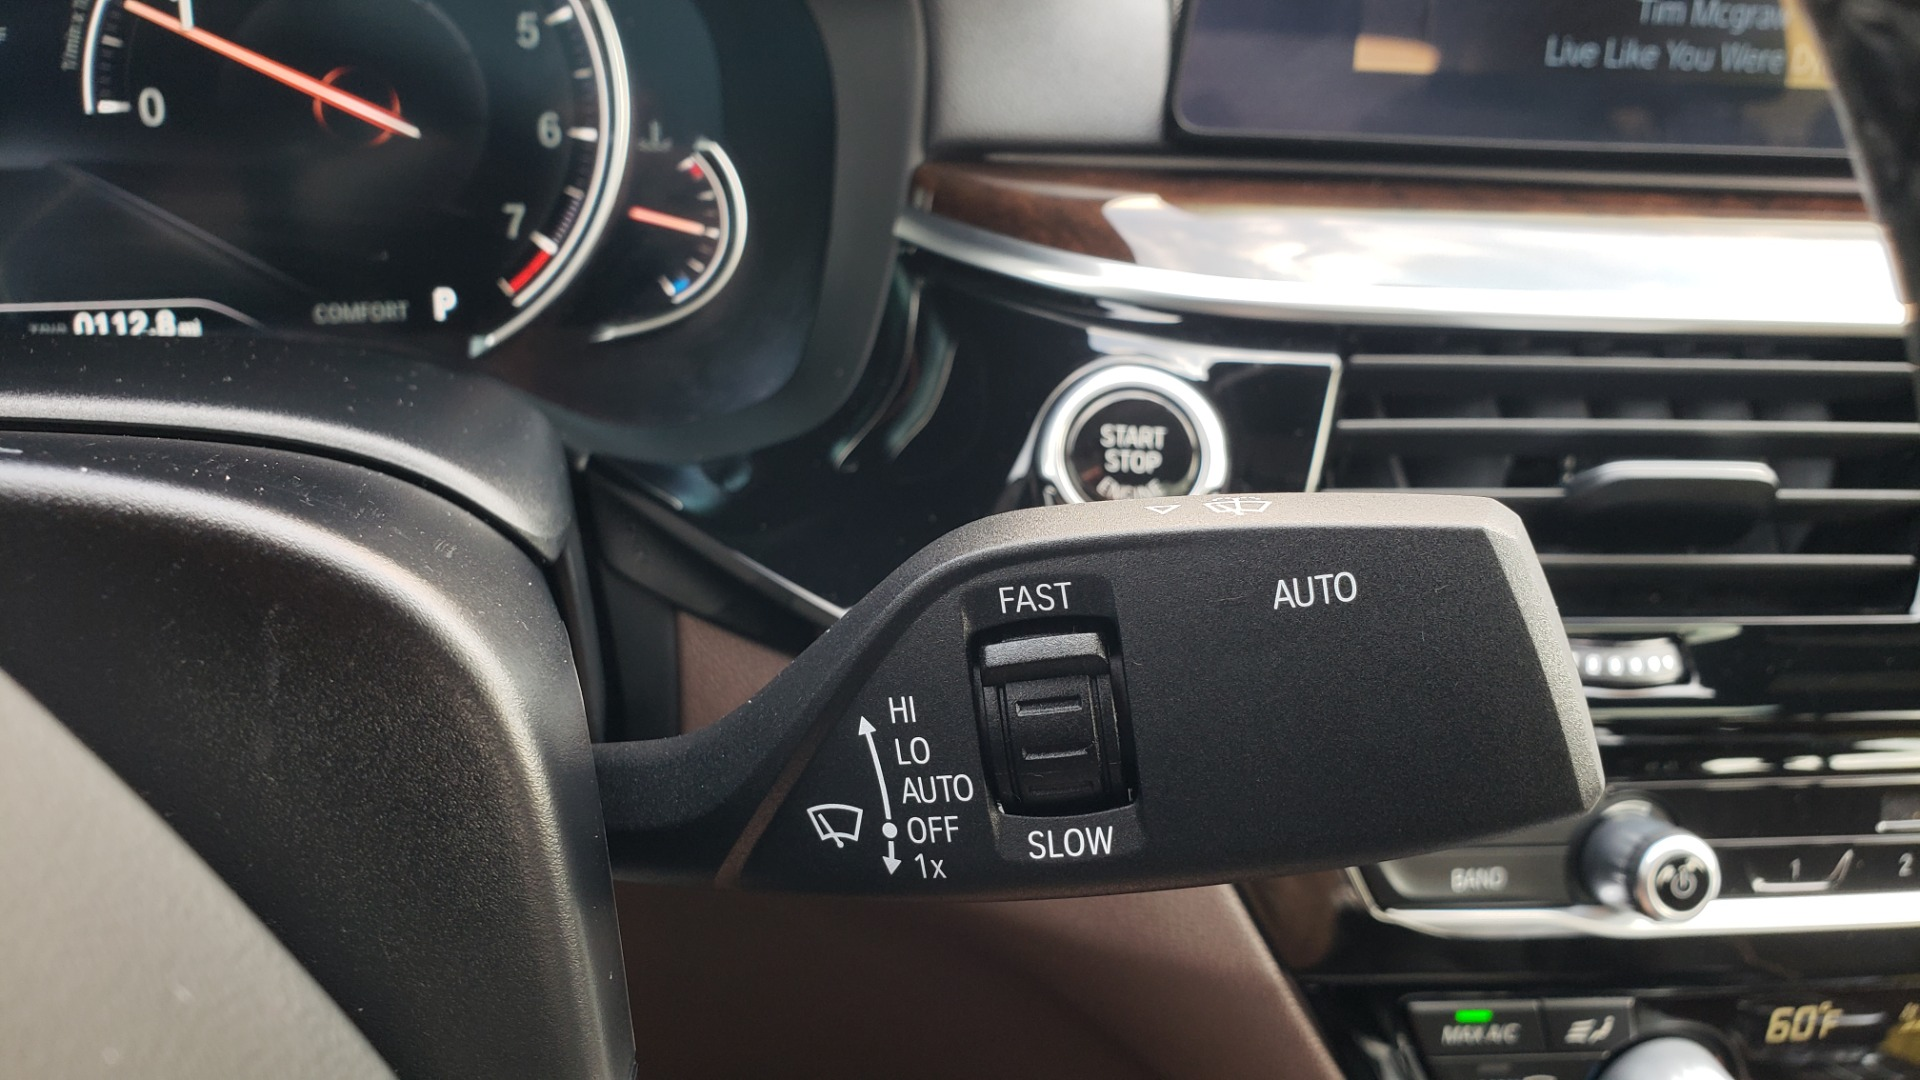 Used 2018 BMW 5 SERIES 540I XDRIVE PREMIUM / EXECUTIVE / LUXURY / H/K SND / REMOTE CONTROL PARKING for sale $40,995 at Formula Imports in Charlotte NC 28227 42